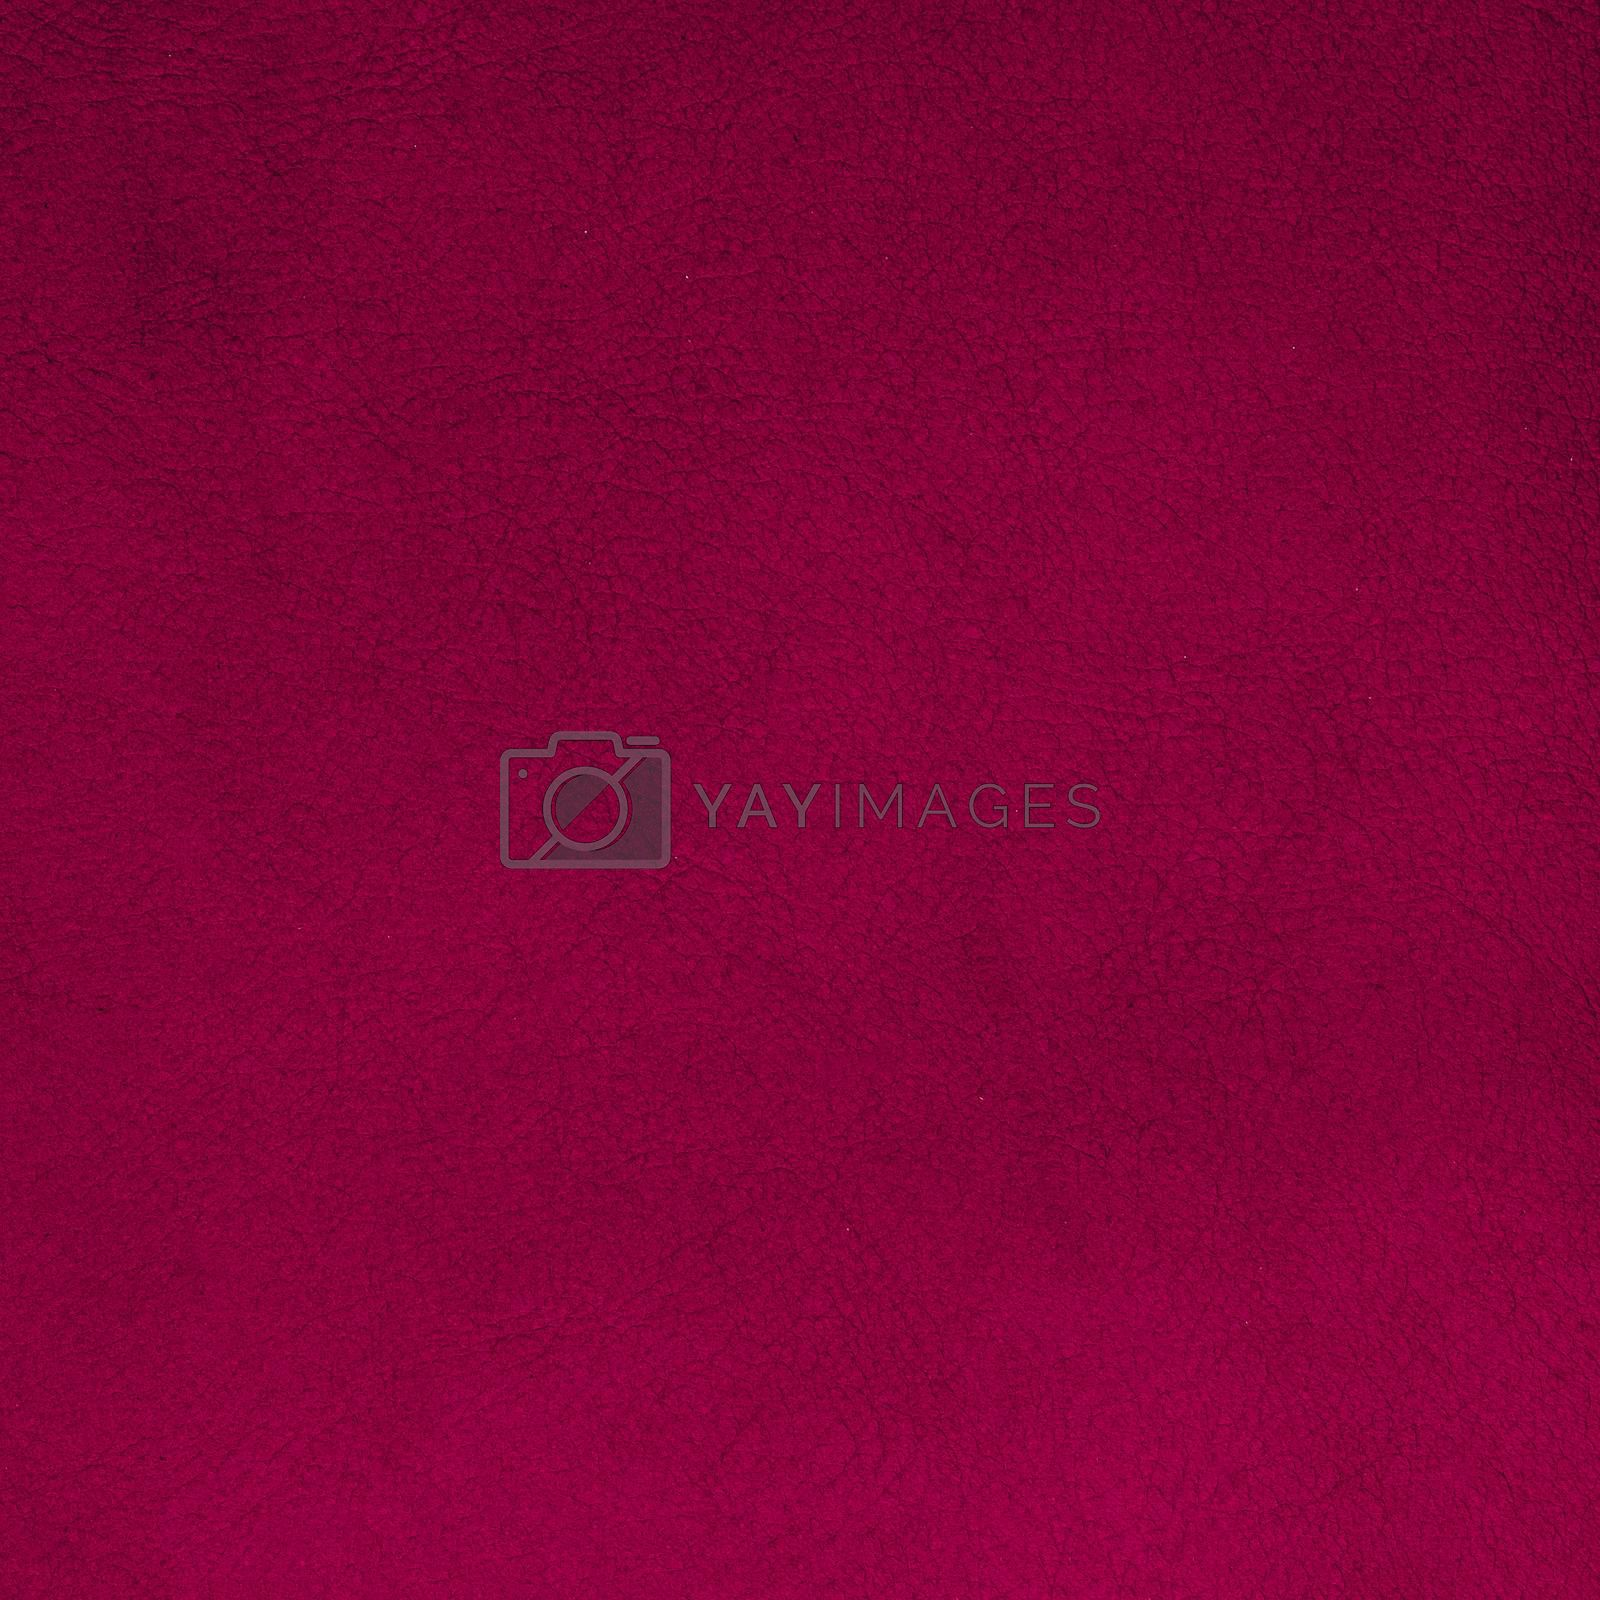 Royalty free image of Pink leather  by homydesign